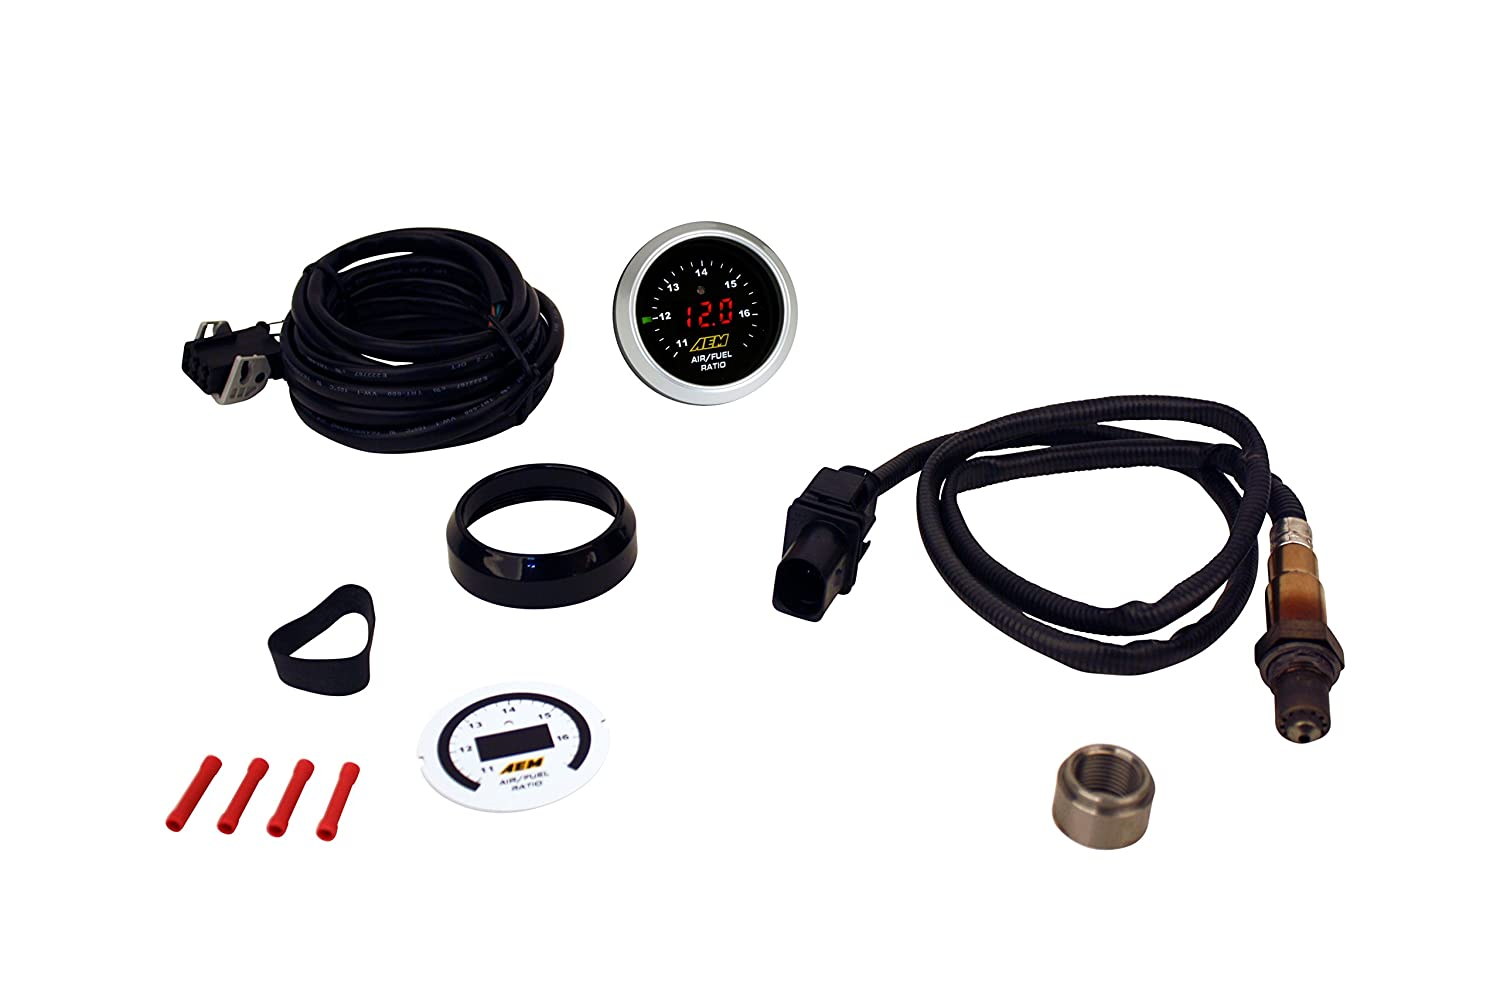 Aem 30 4110 Uego Air Fuel Ratio Gauge Automotive Wiring A